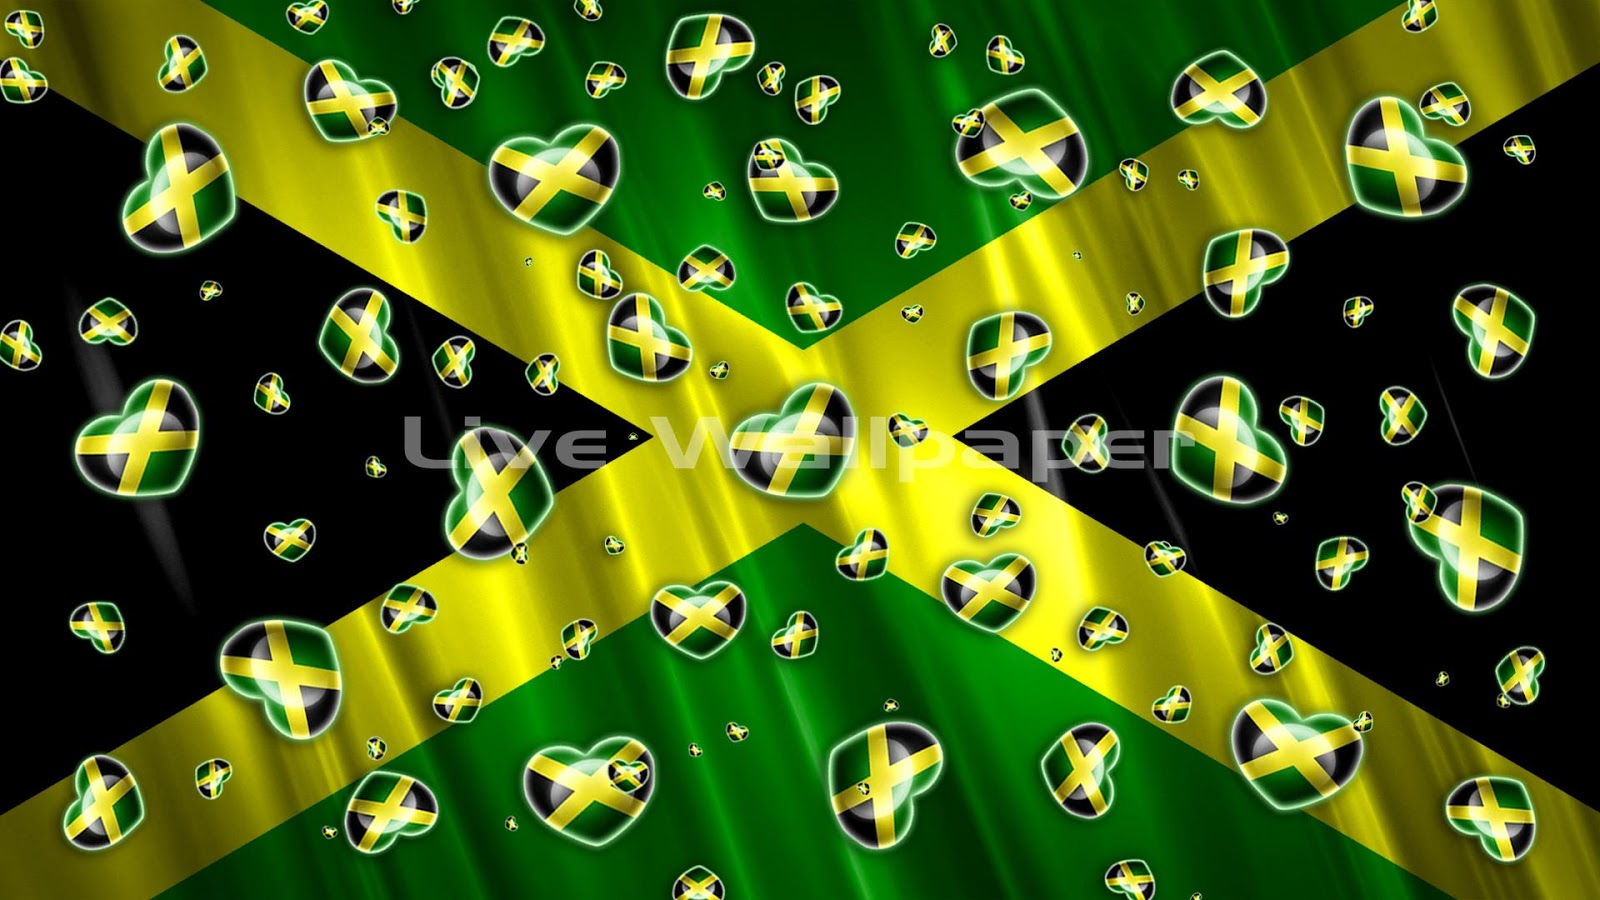 Heart Flag Jamaica   screenshot 1600x900